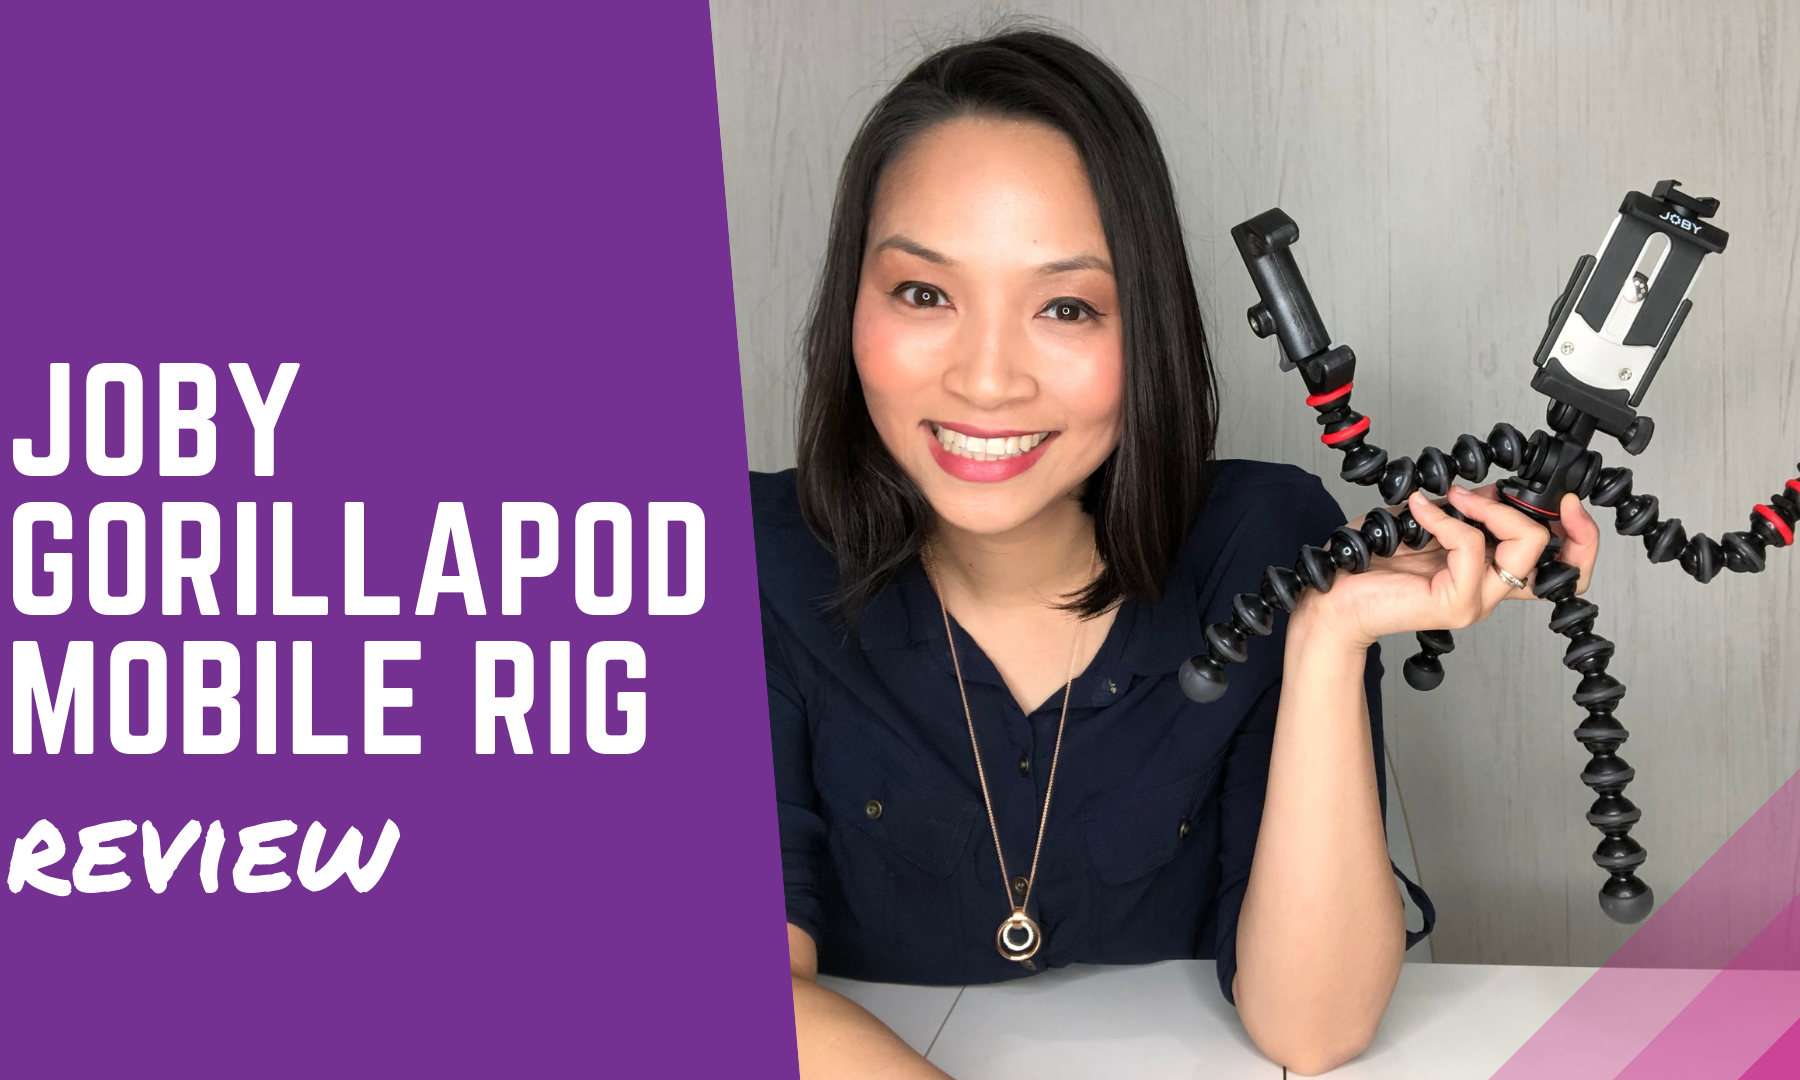 Best phone tripod Joby gorillapod mobile rig review